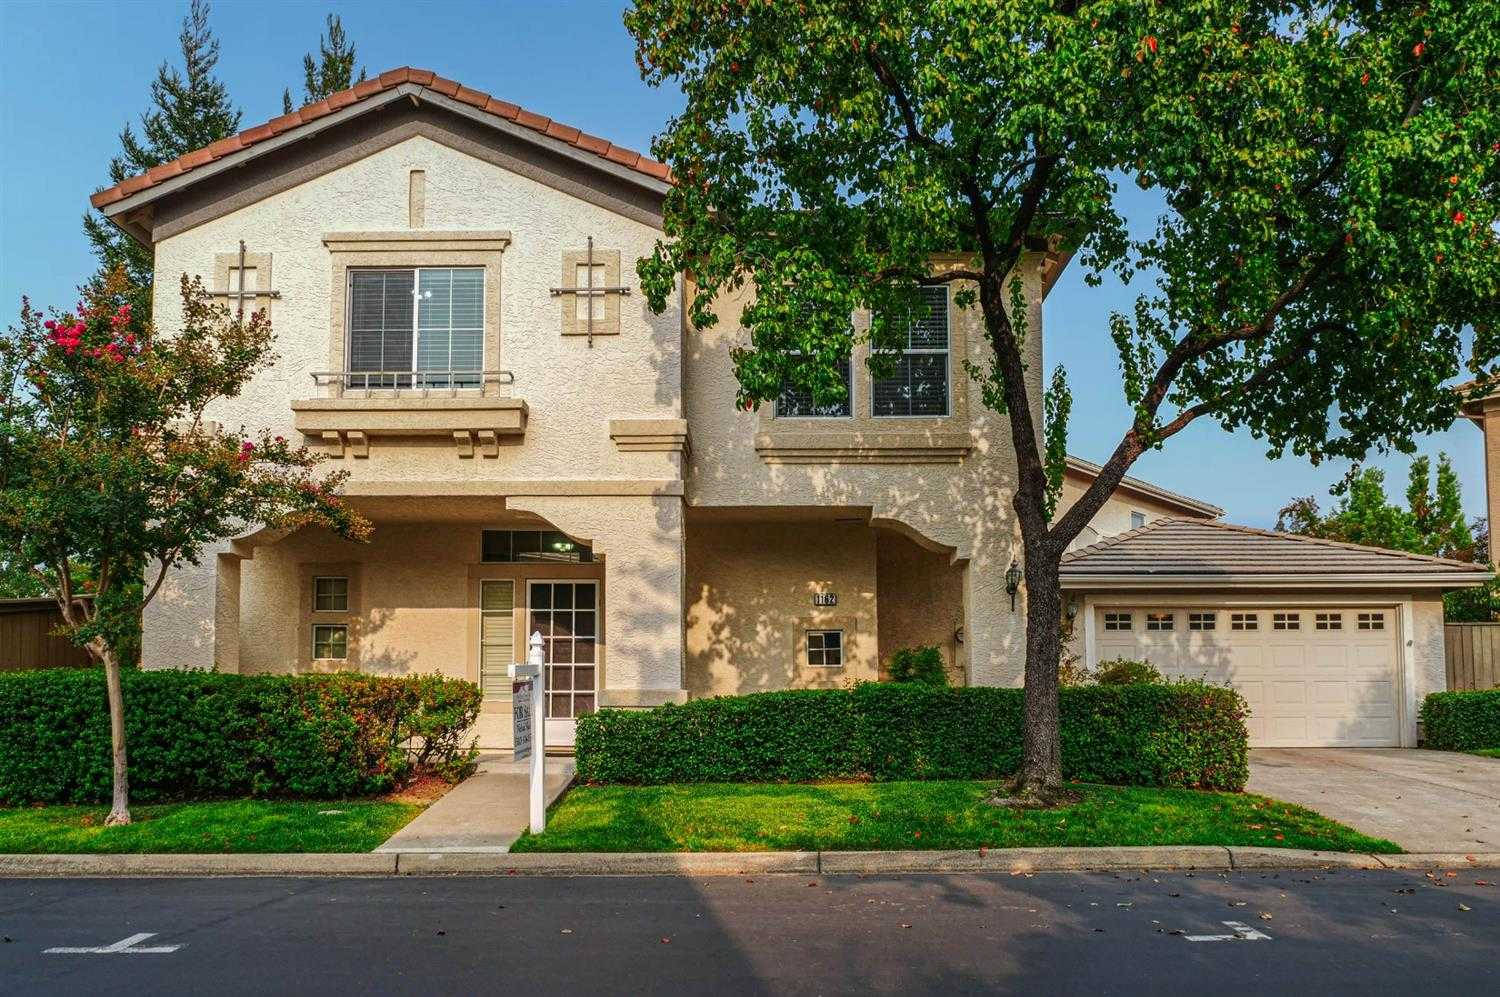 $480,000 - 3Br/3Ba -  for Sale in Folsom